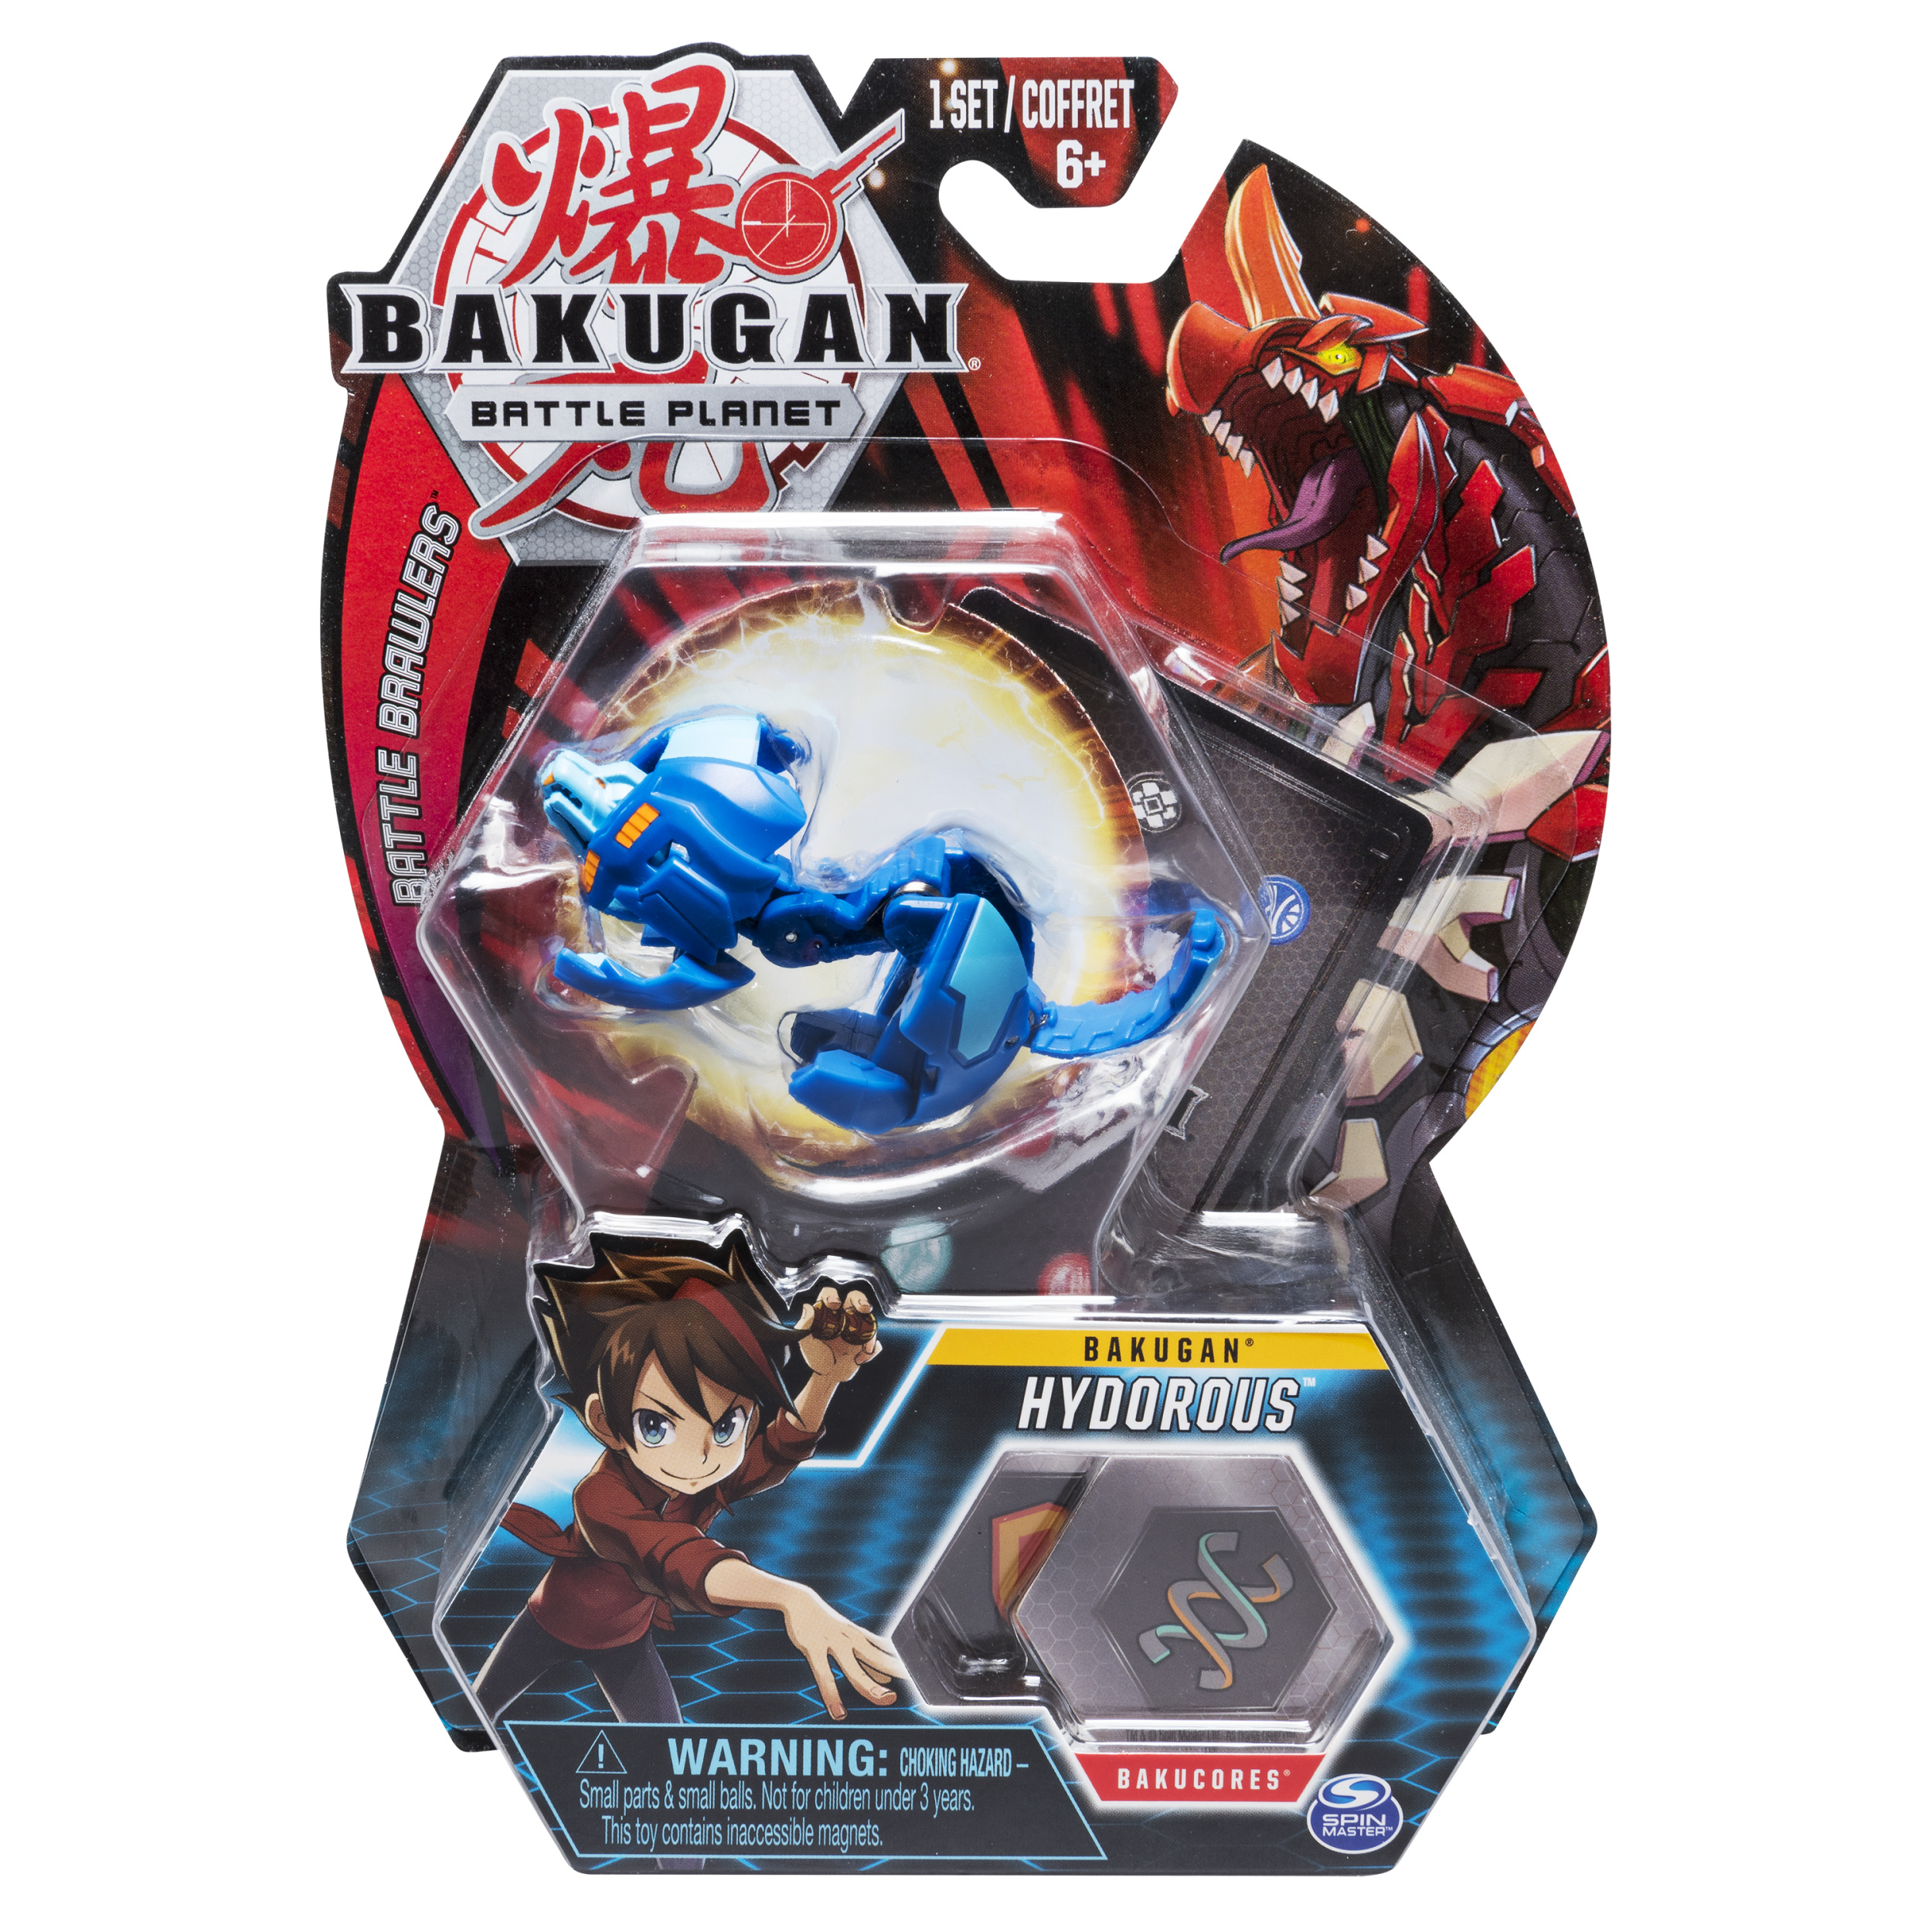 Bakugan, Hydorous, 2-inch Tall Collectible Transforming Creature, for Ages 6 and Up